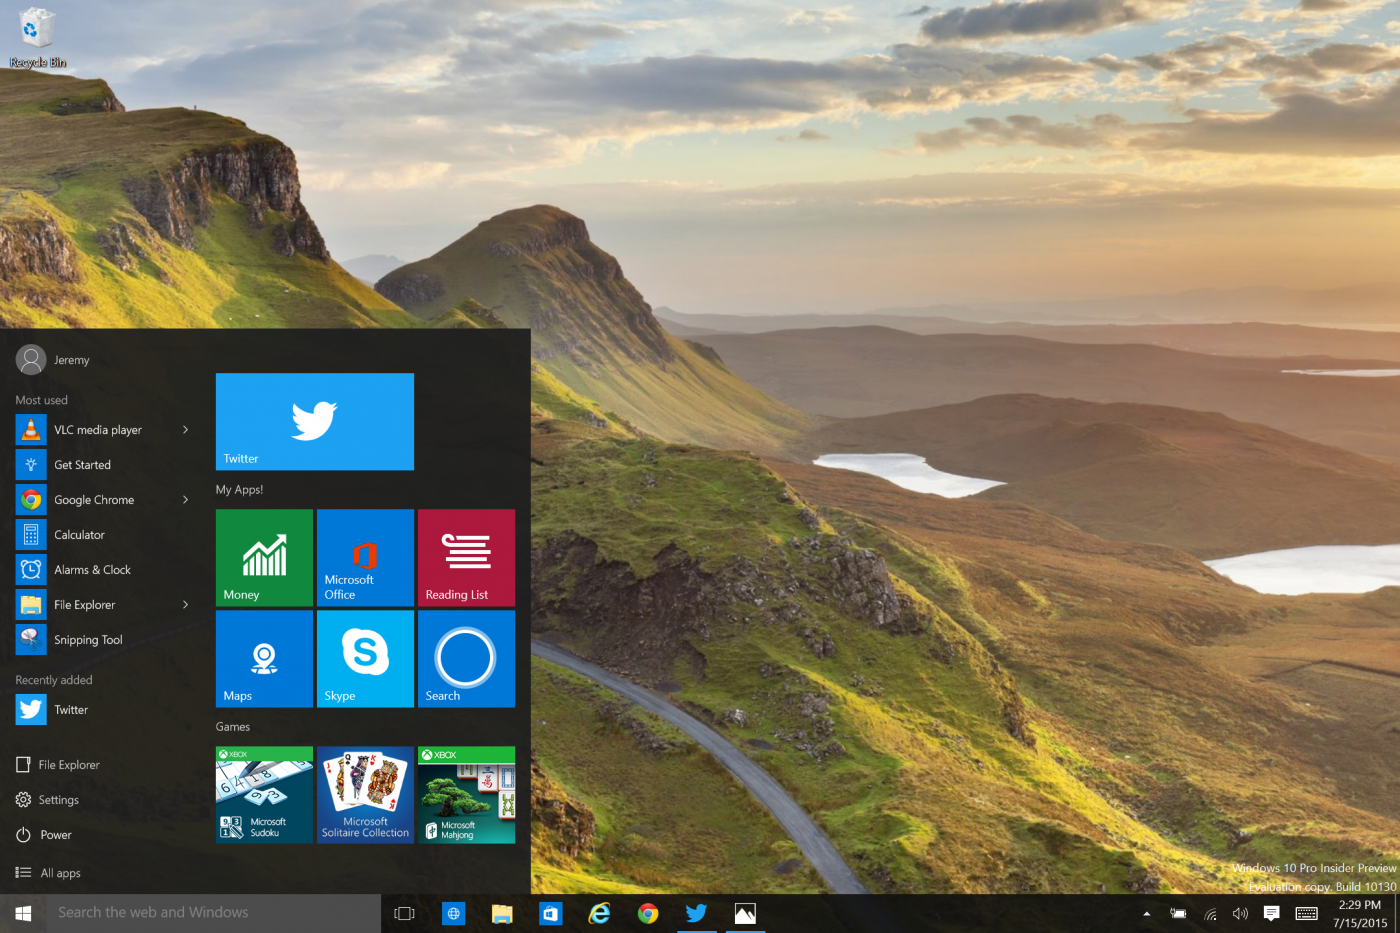 Twitter Released a Native Windows 10 App